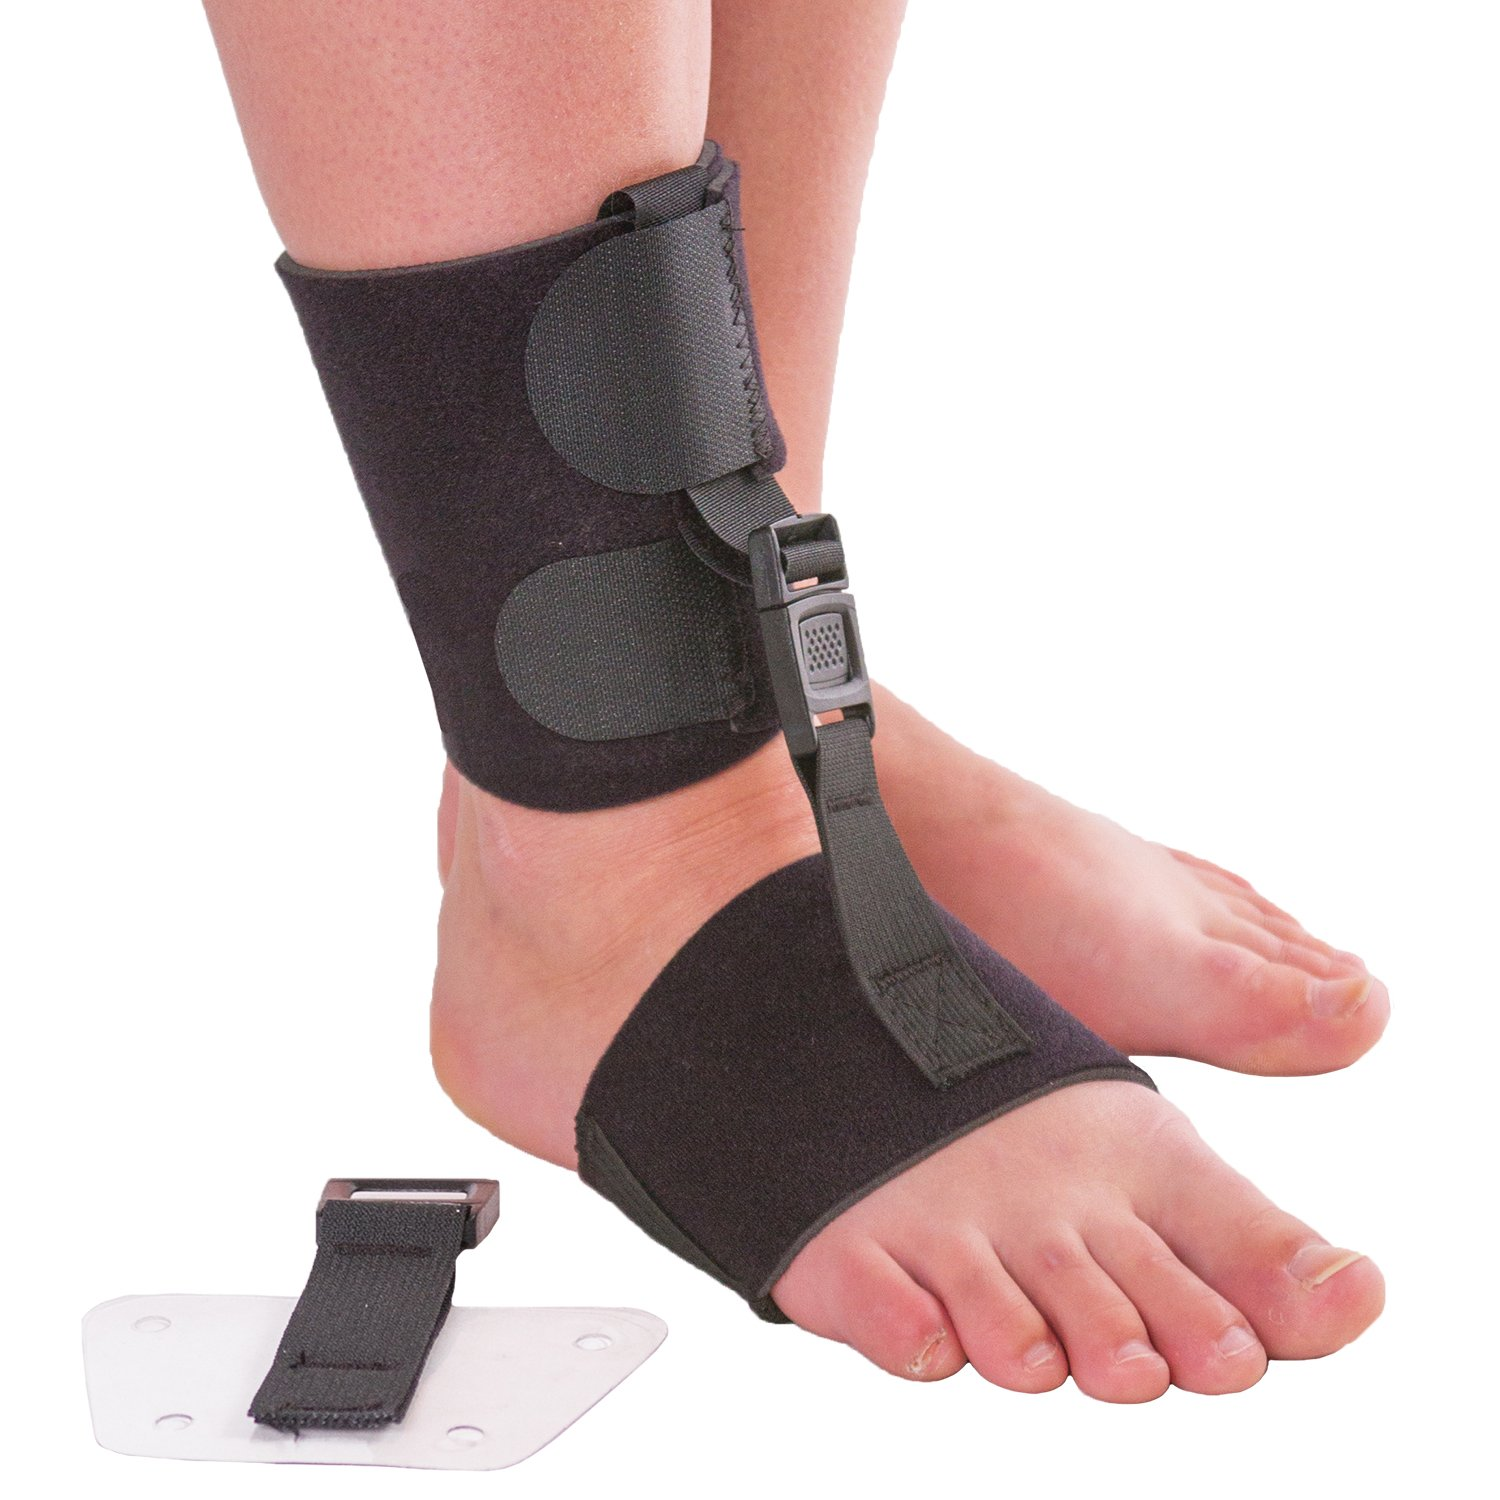 Soft AFO Foot Drop Brace | Ankle Foot Orthosis with Dorsiflexion Assist Strap Keeps Foot Up for Improved Walking Gait, Prevents Cramps - Wear Barefoot or Inside Shoe (L/XL - Fits Right or Left Foot) by BraceAbility